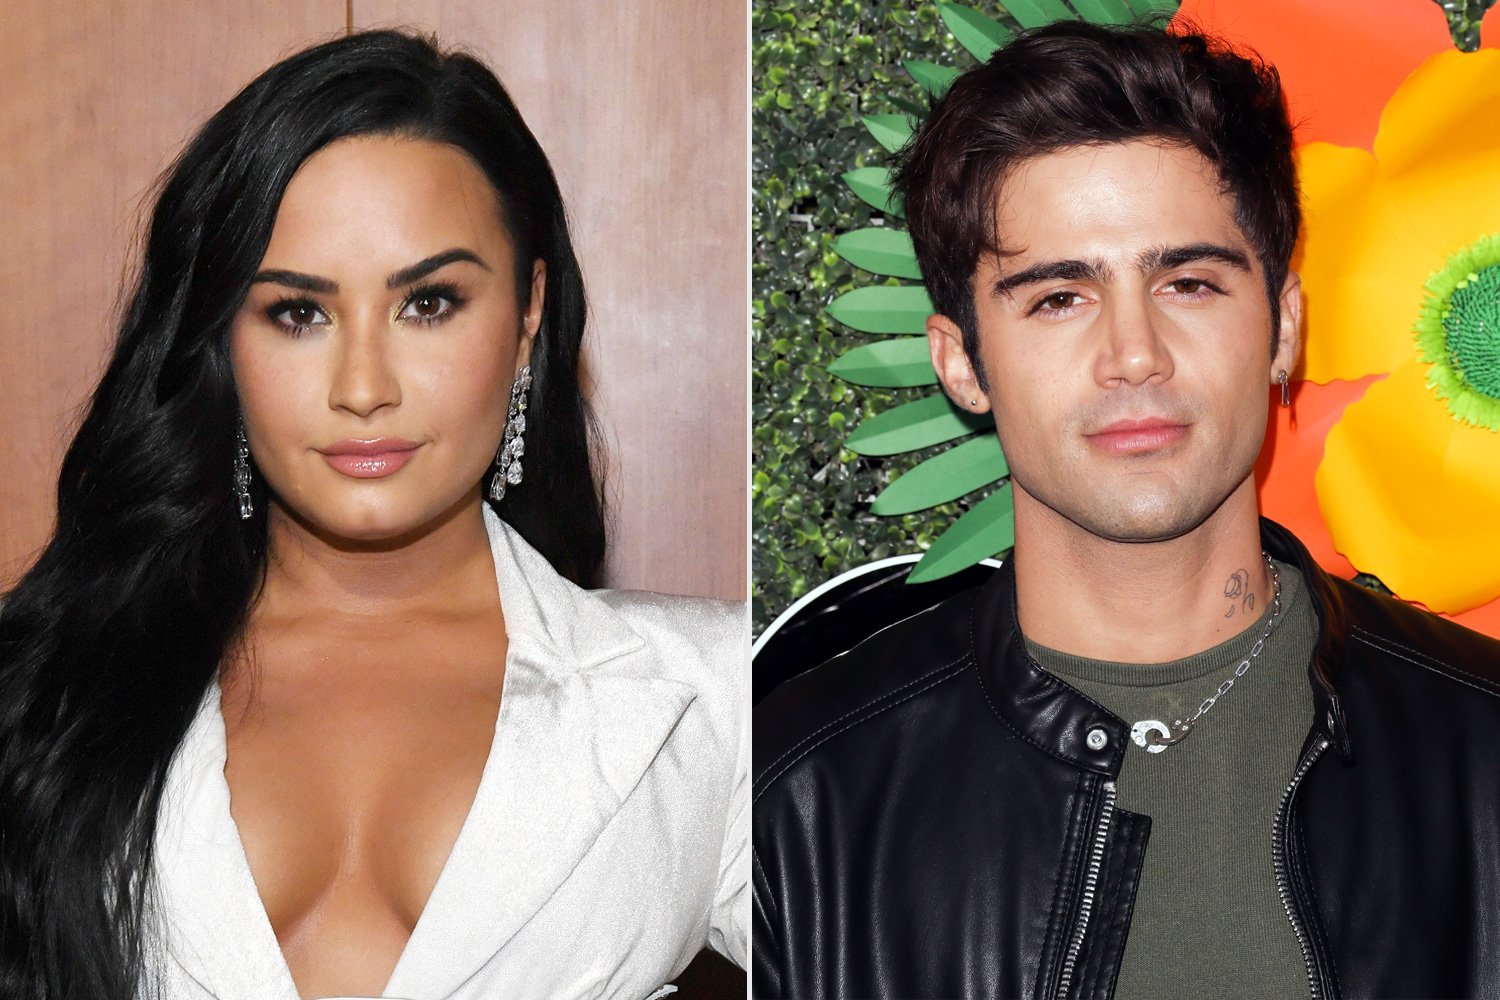 Demi Lovato Friends Have Hesitations About Her Fiance Max Ehrich But She Is 'Truly In Love' So She's Ignoring Their Opinions